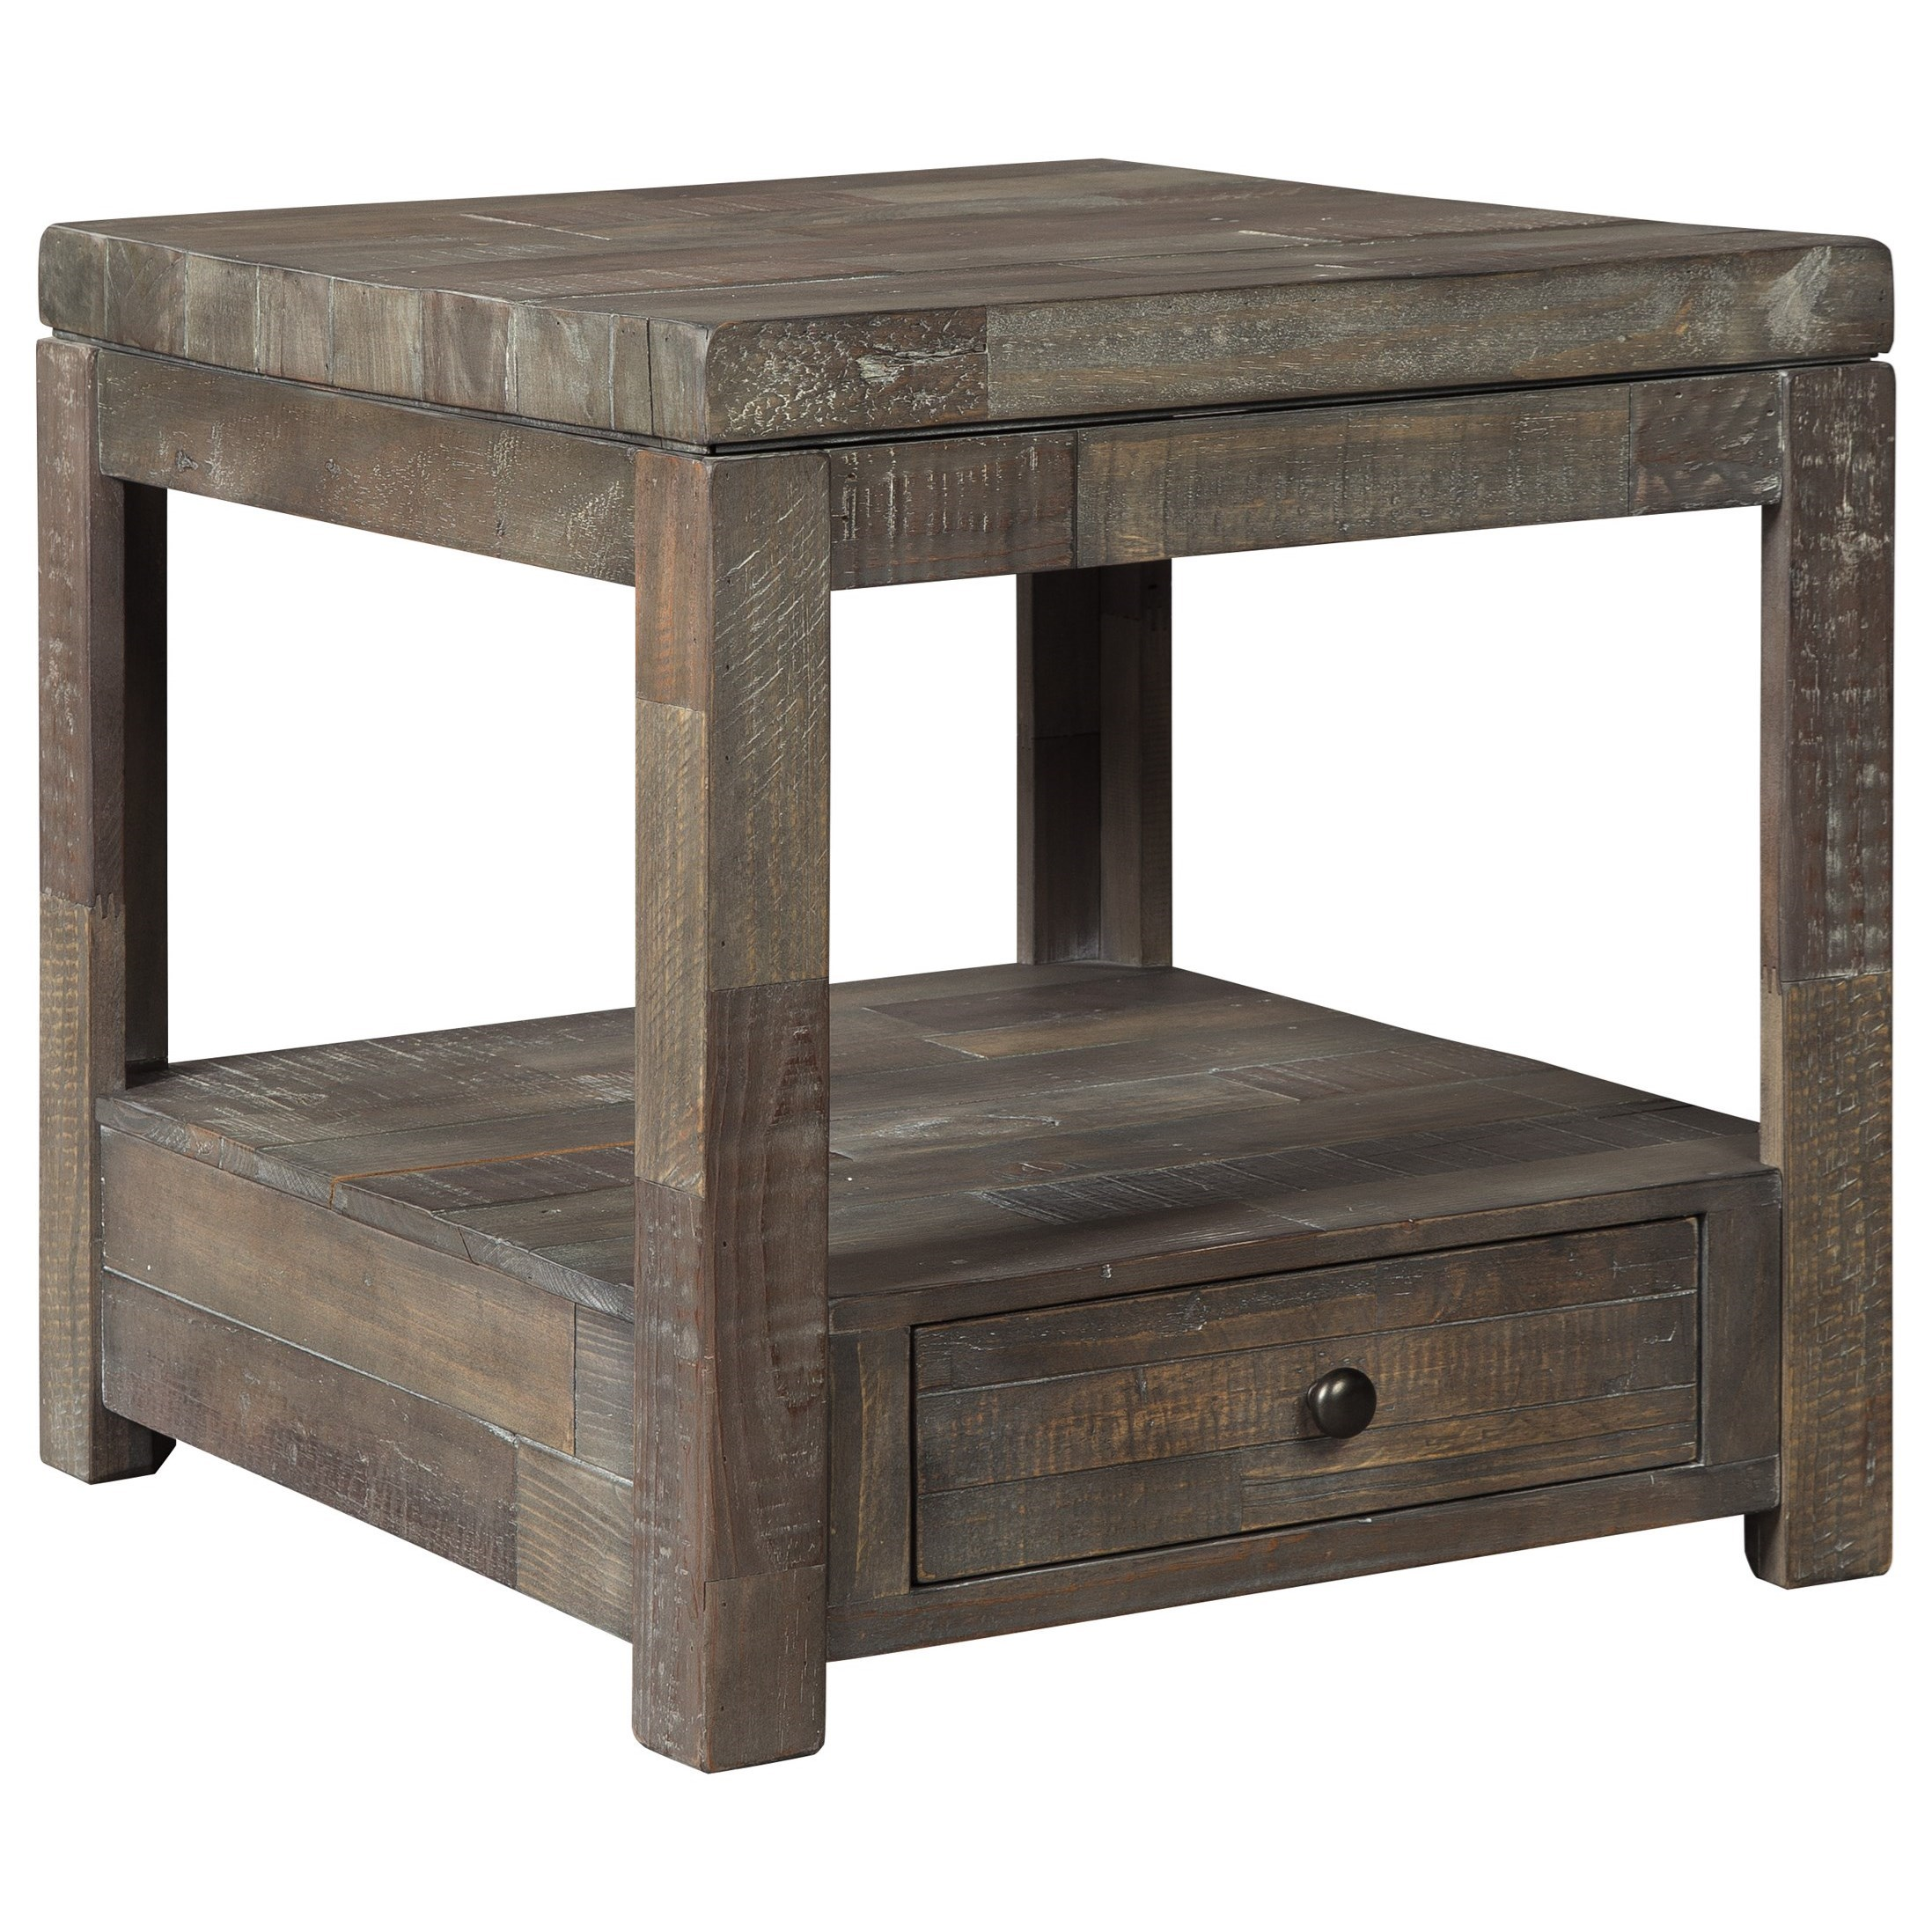 Ordinaire Signature Design By Ashley Daybrook Rectangular End Table   Item Number:  T884 3